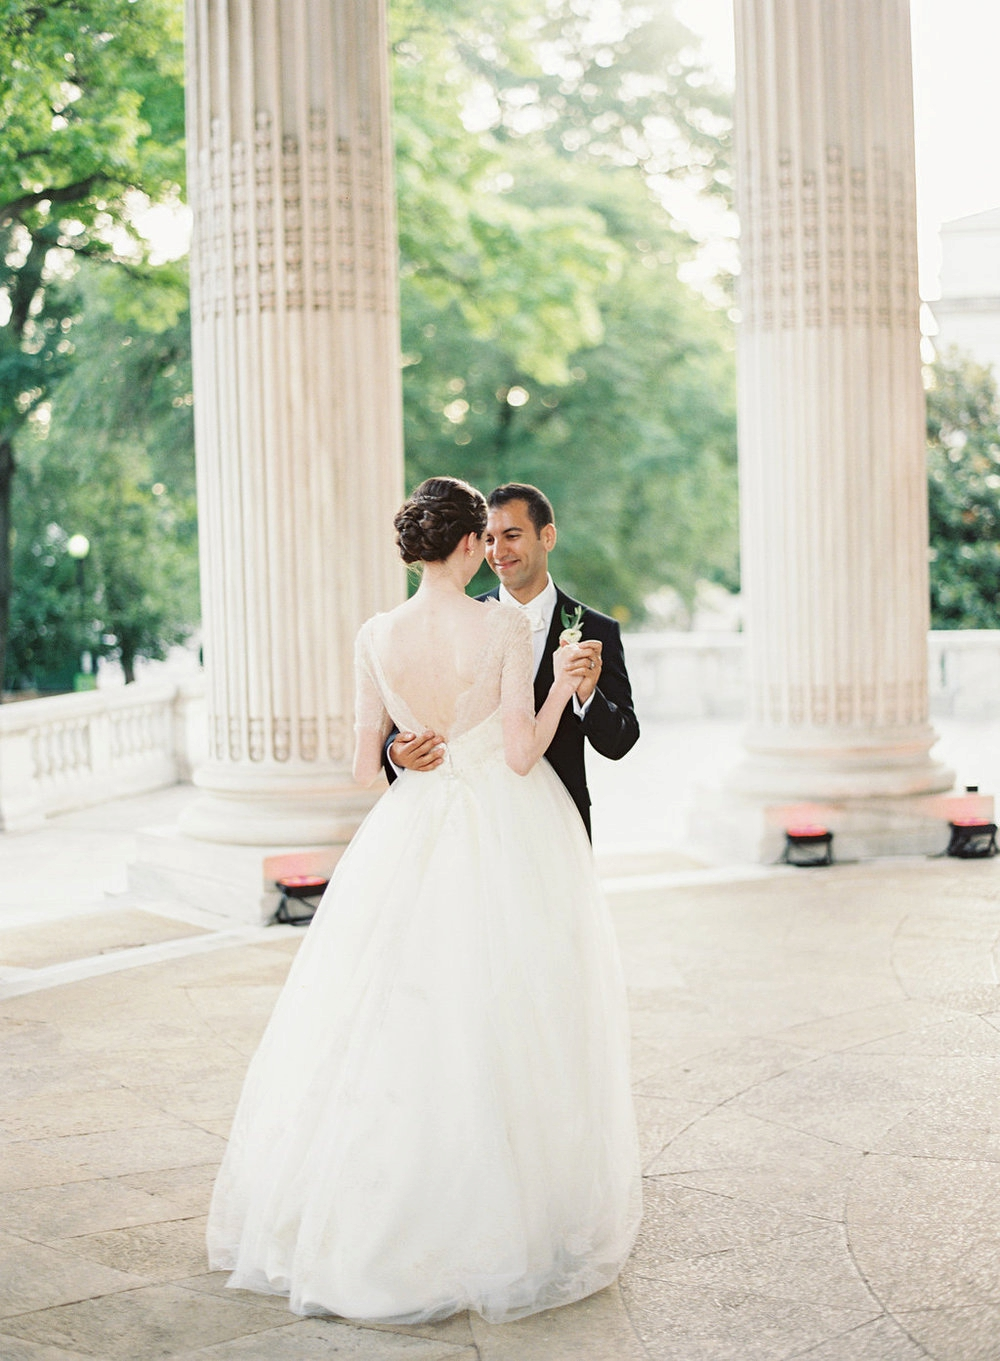 Vicki Grafton Photography - Fine Art DC Virginia Charlottesville Film Wedding Photographer_0064.jpg